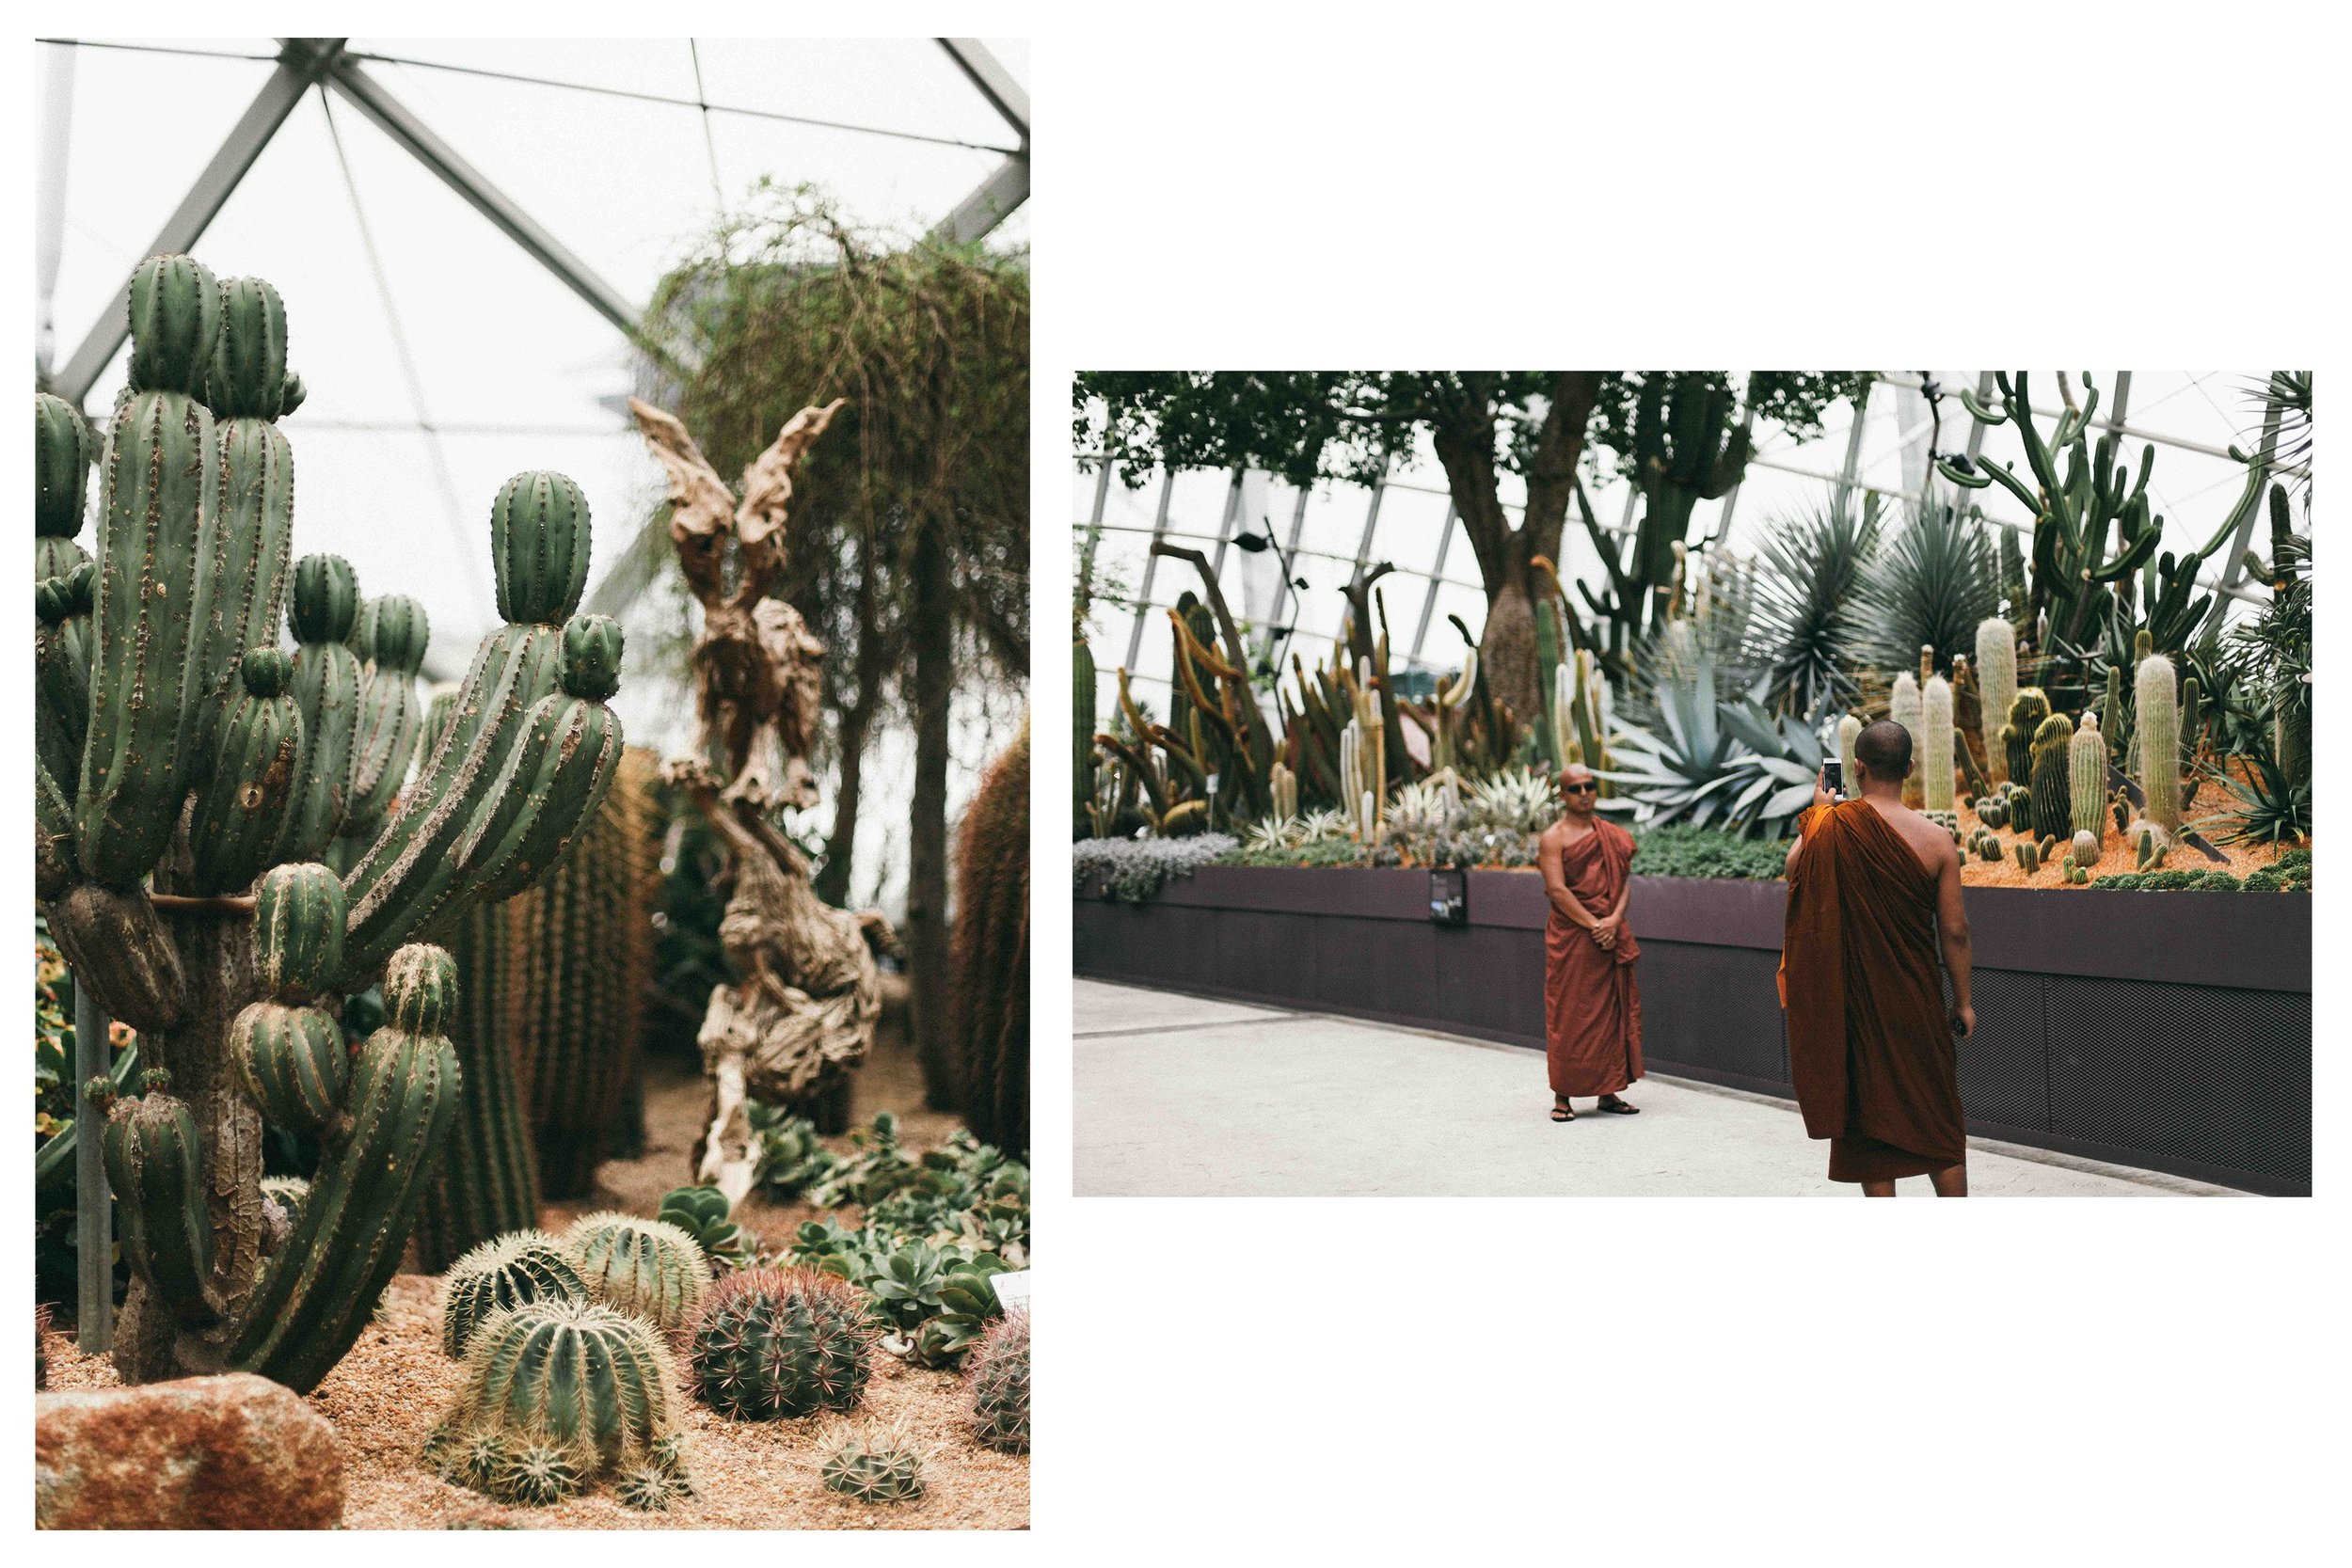 Cactus fields that everyone needs a photo with